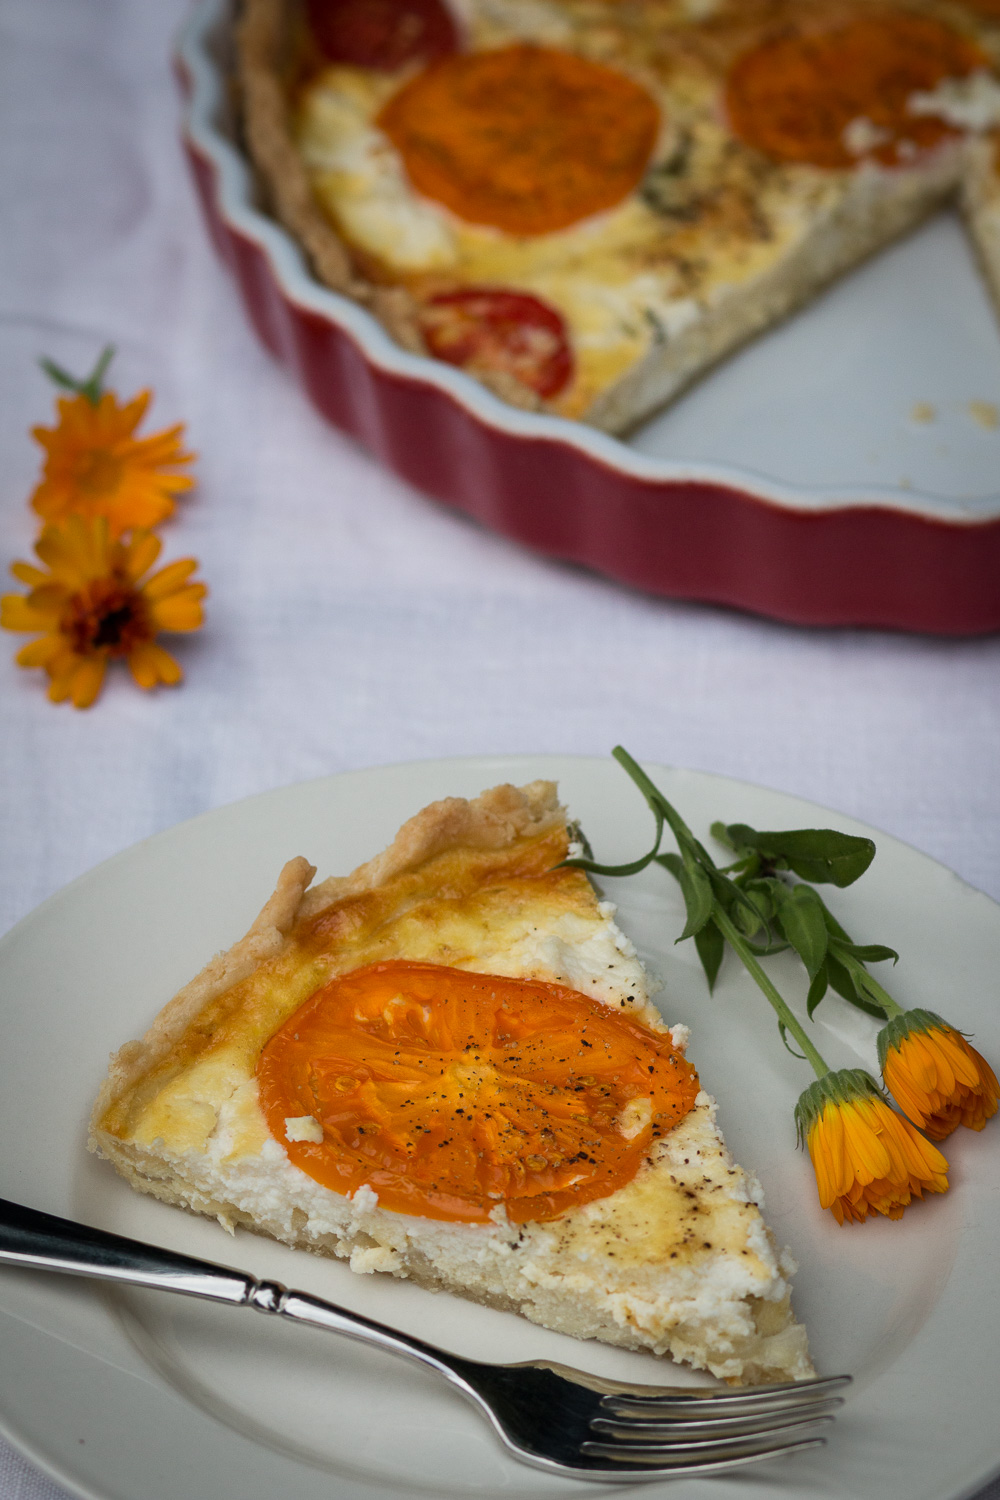 tomato and ricotta cheese pie.jpg